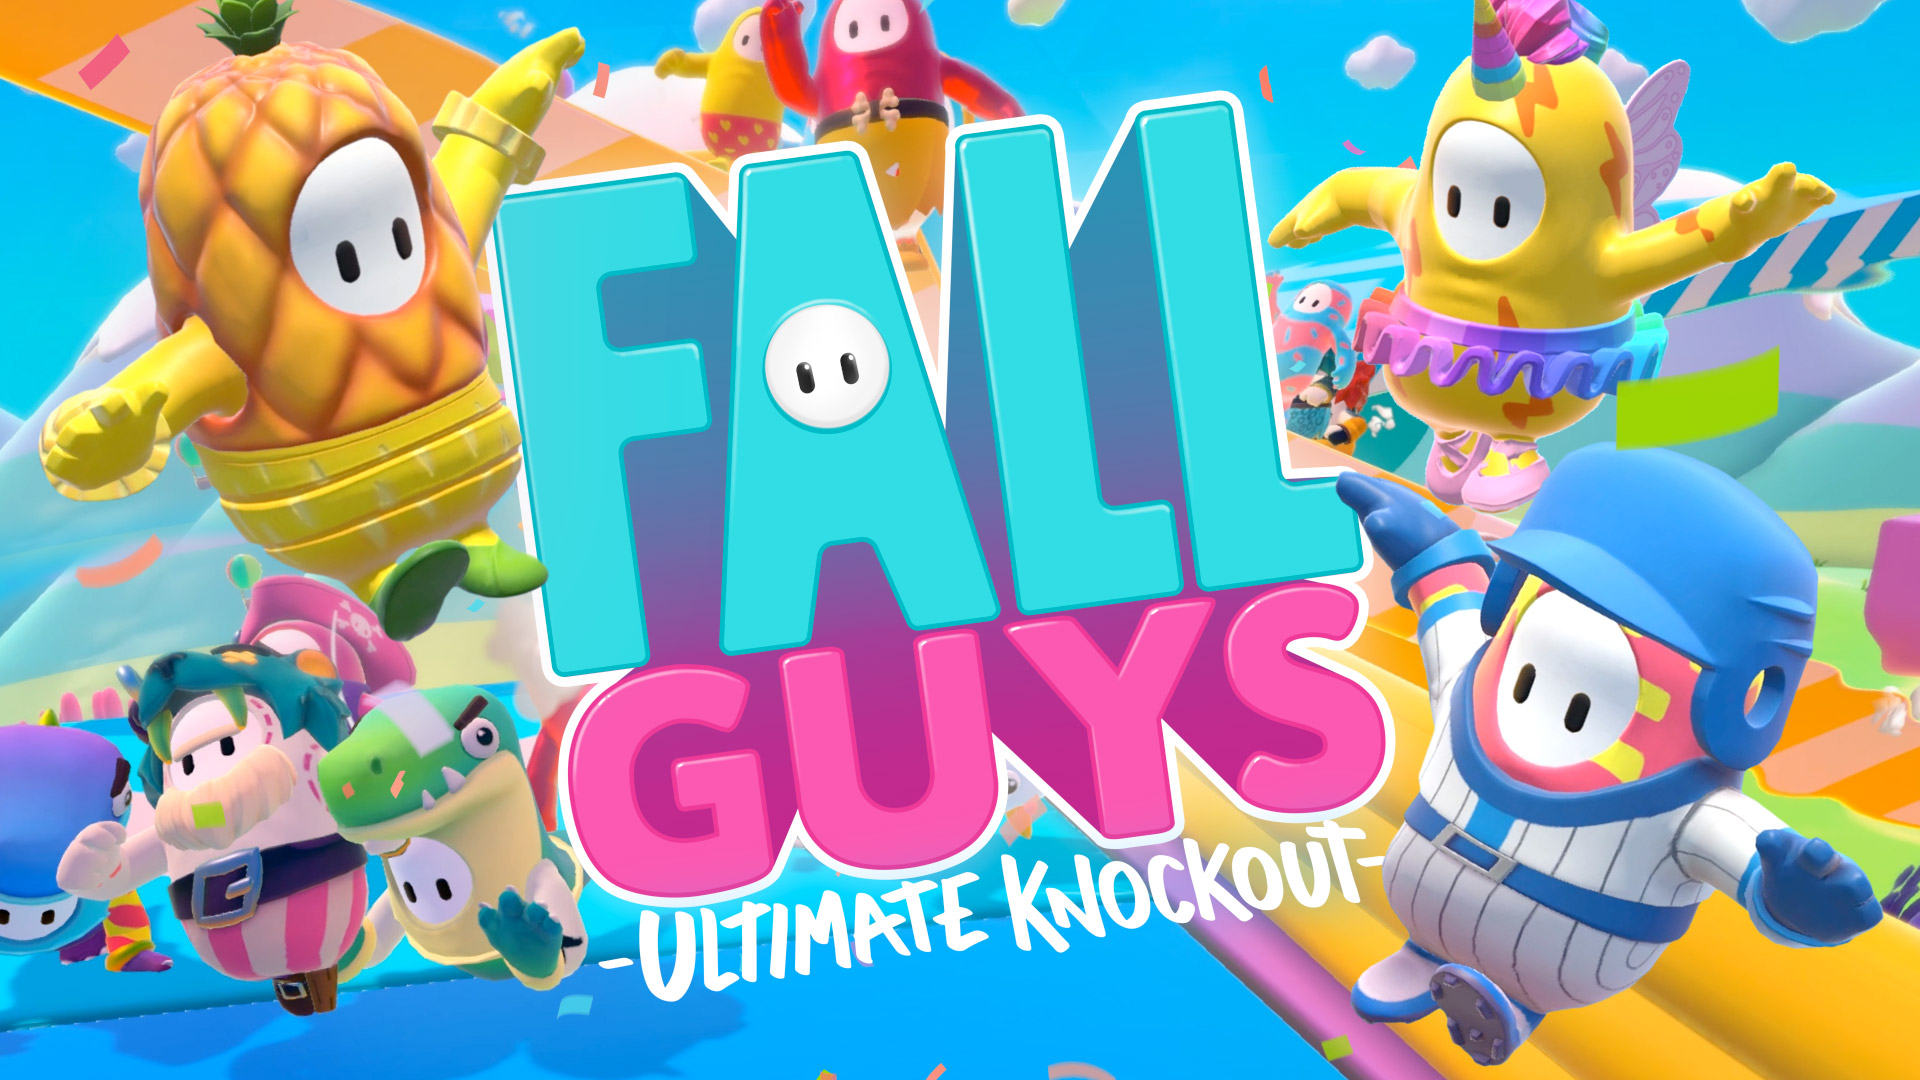 Fall Guys Minigames Guide List Of All Current Games